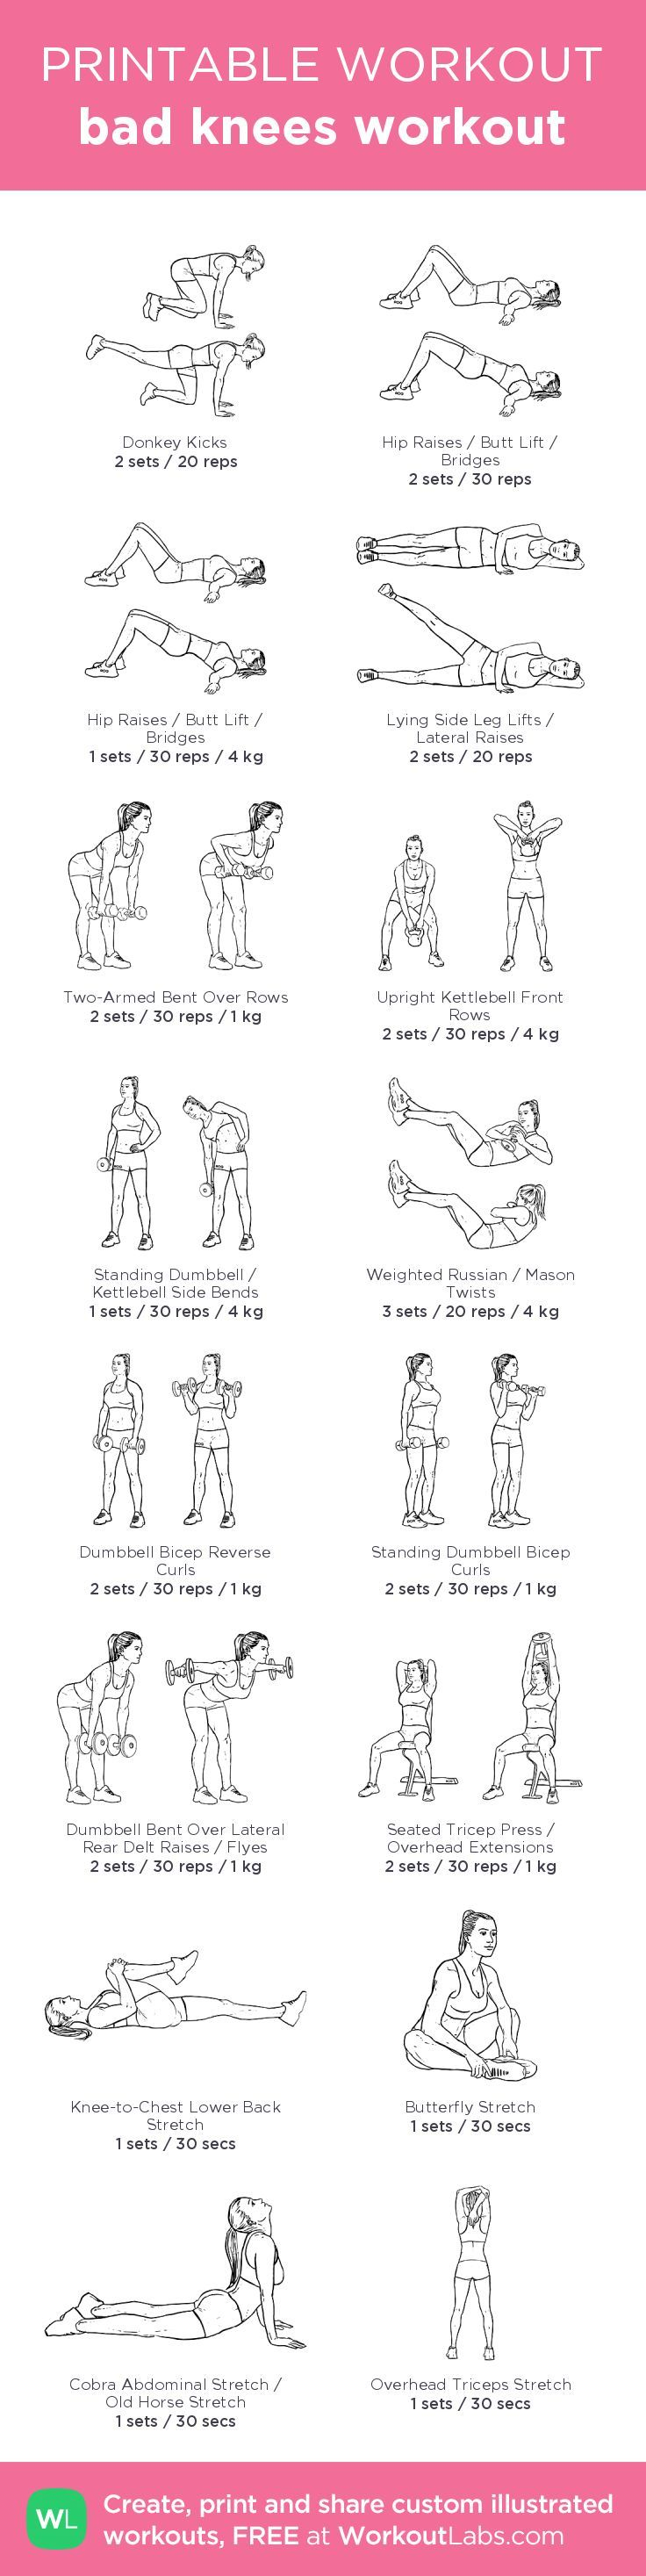 bad knees workout – illustrated exercise plan created at http://WorkoutLabs.com • Click for a printable PDF and to build your own #customworkout